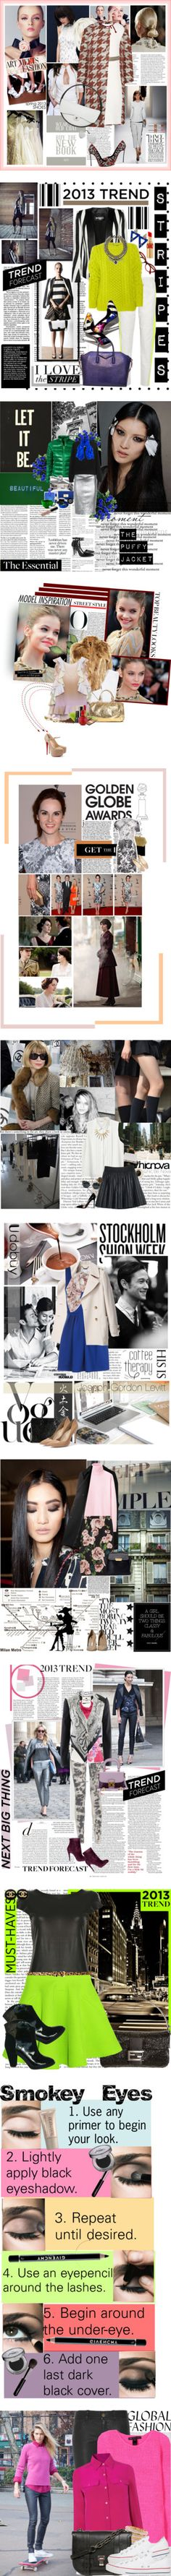 """Top Sets for Jan 8th, 2013"" by polyvore ❤ liked on Polyvore"